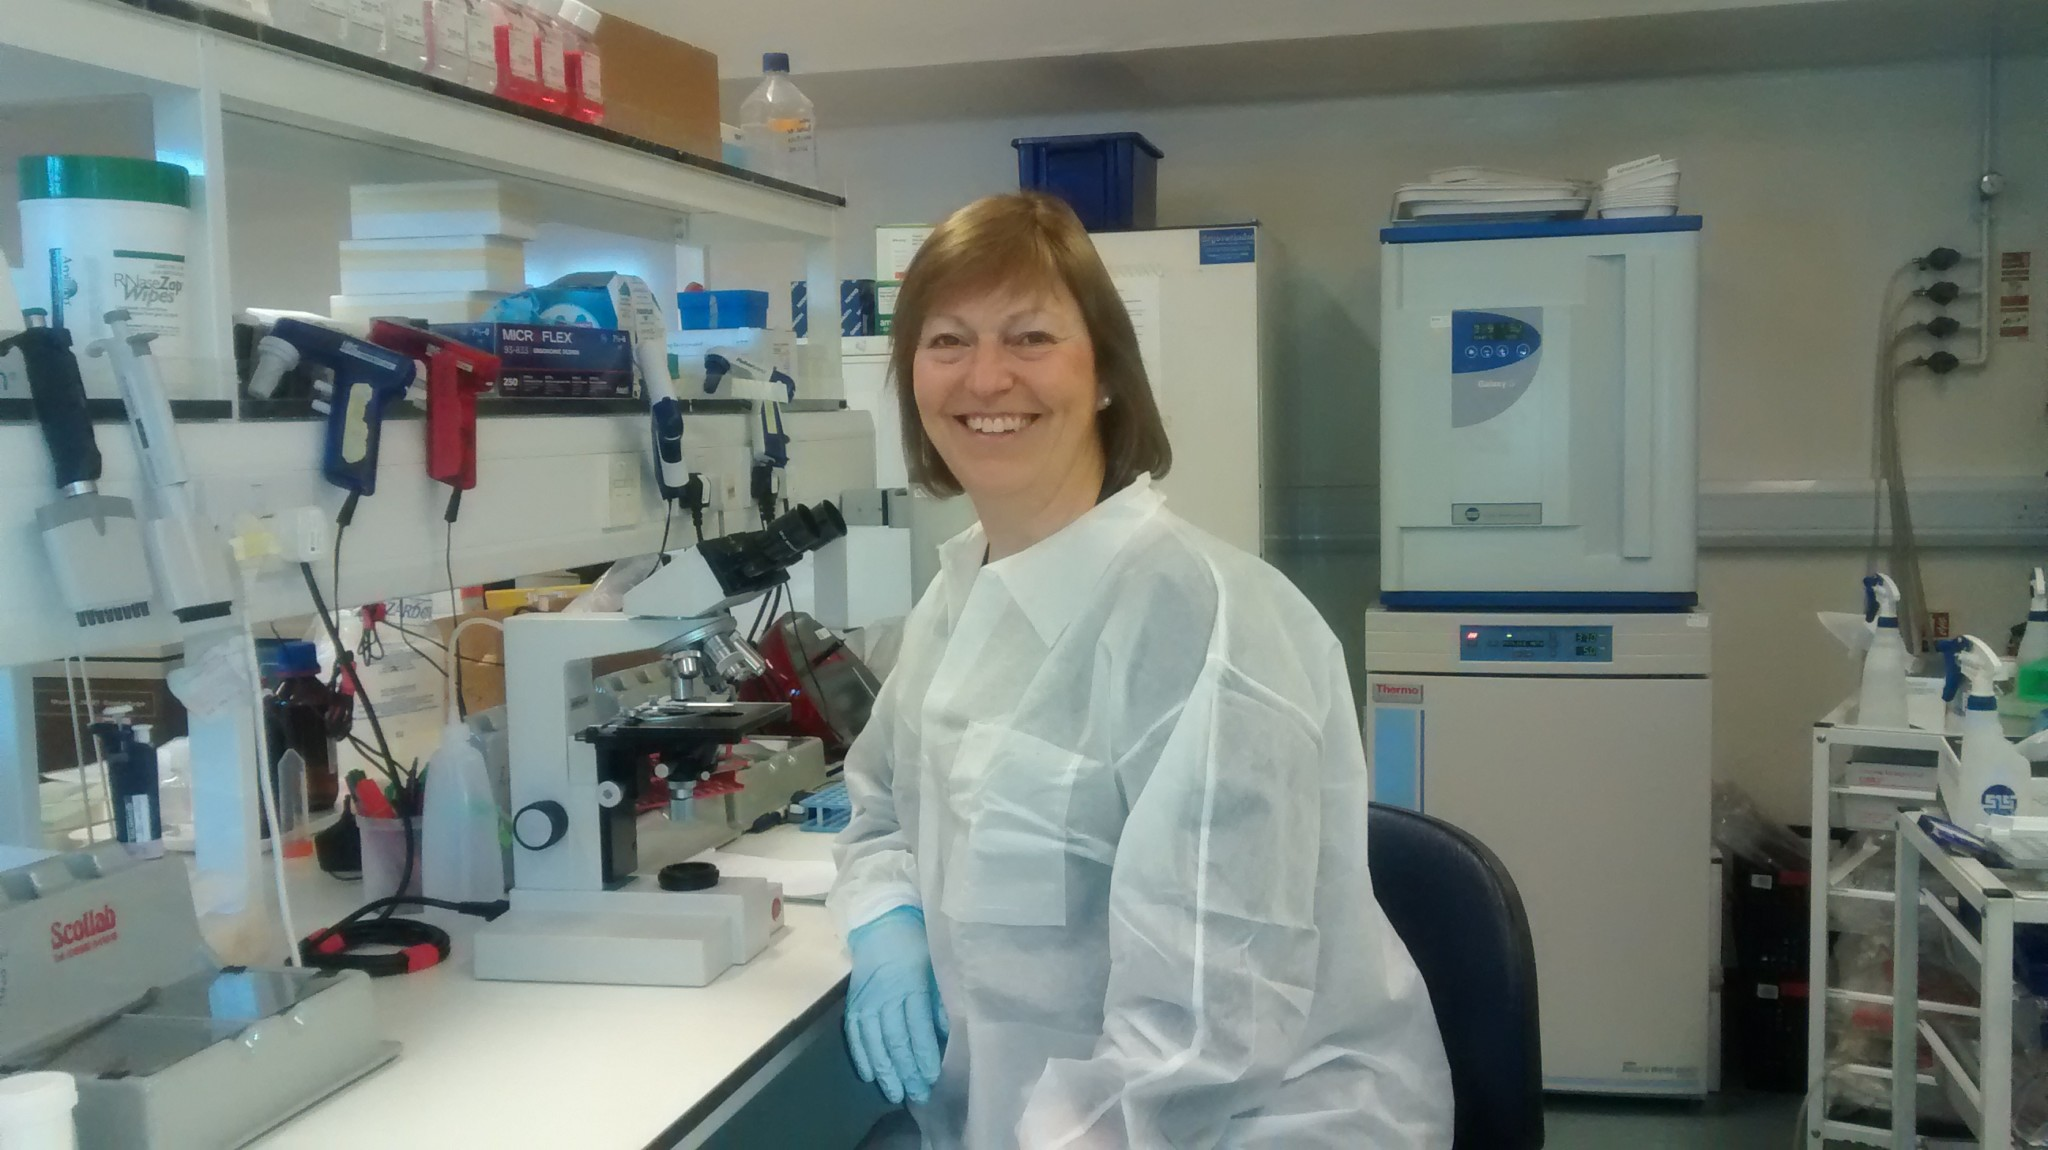 Professor Ruth Jarrett is developing one of many new blood tests for cancer